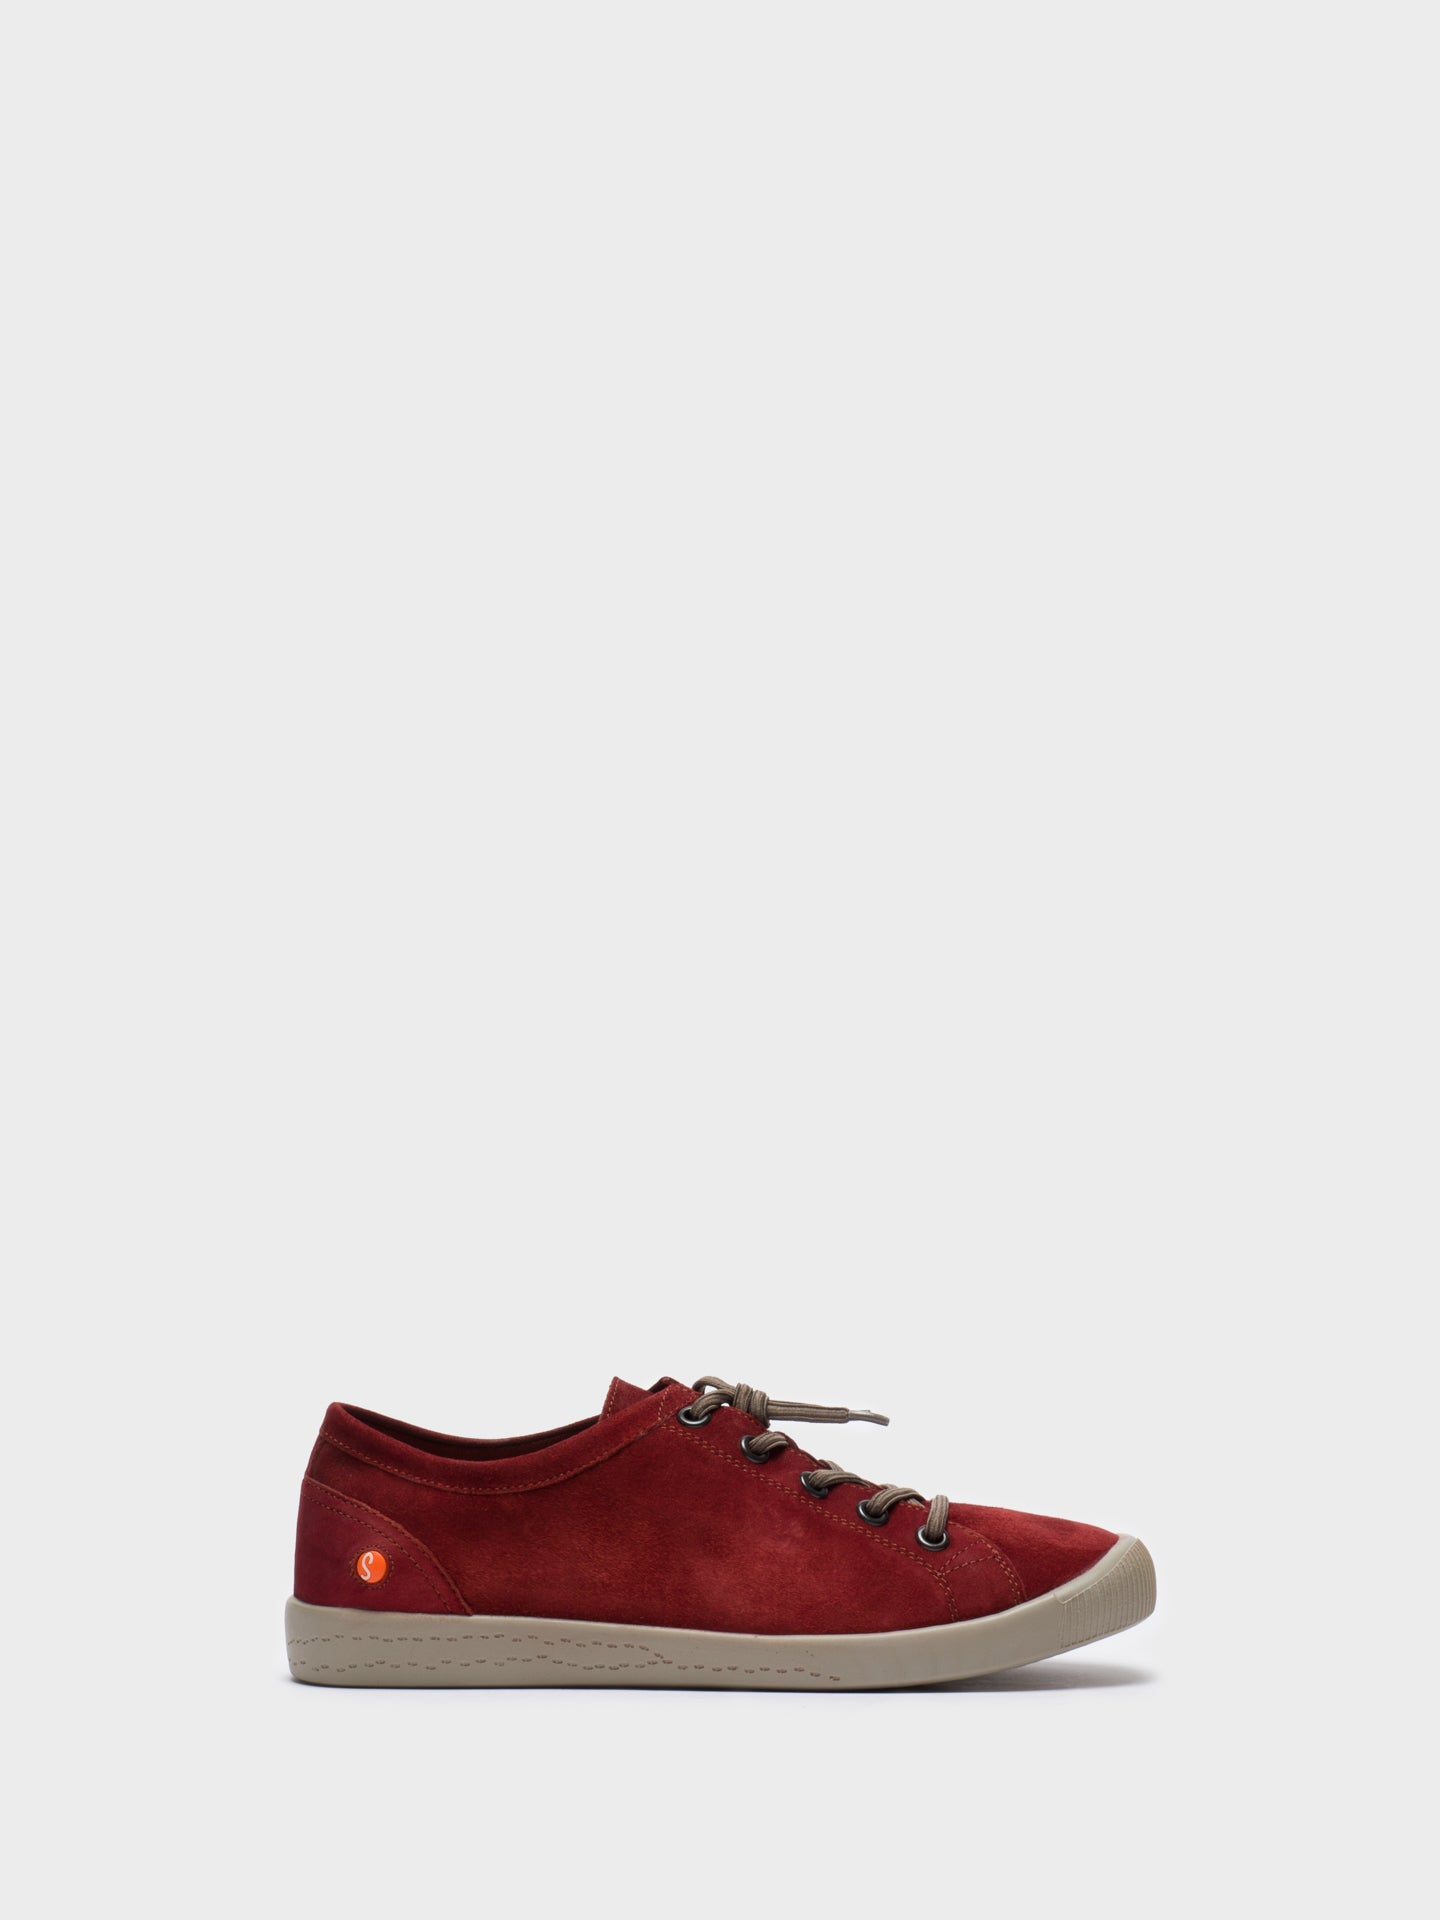 SOFTINOS DarkRed Low-Top Sneakers